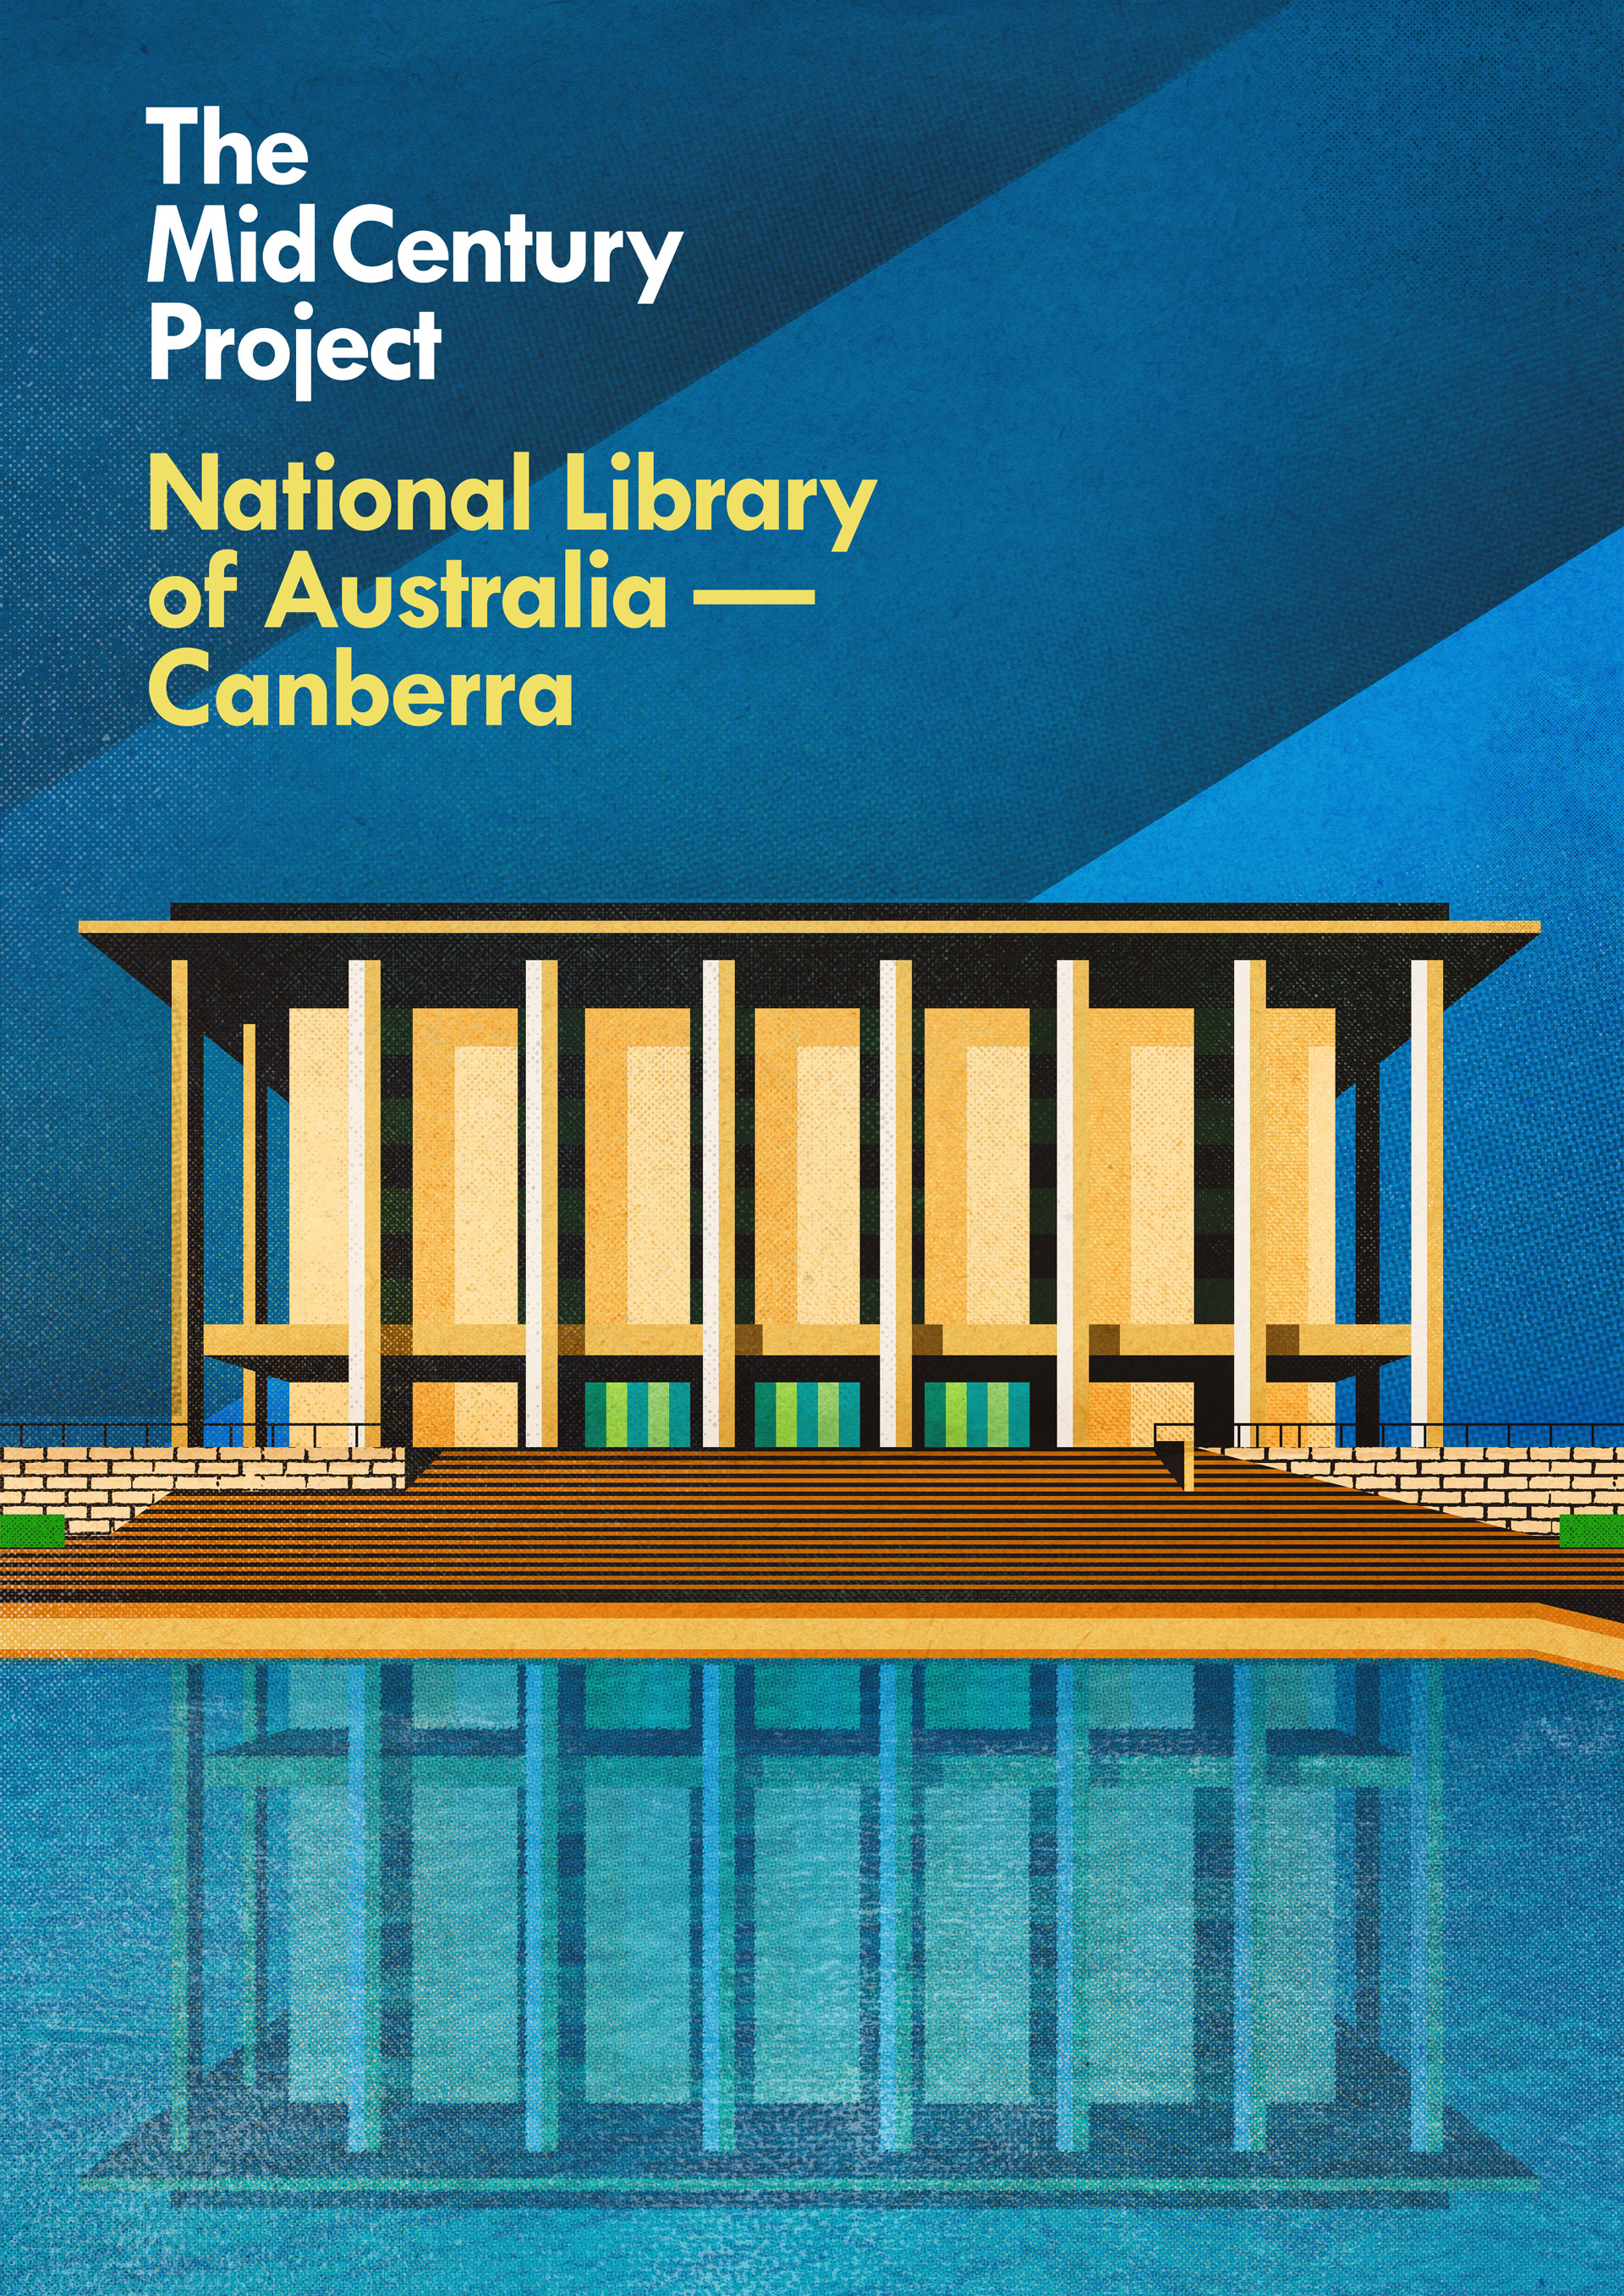 Mid-Century-Project-3AM-Jonathan-Key-Canberra-Library